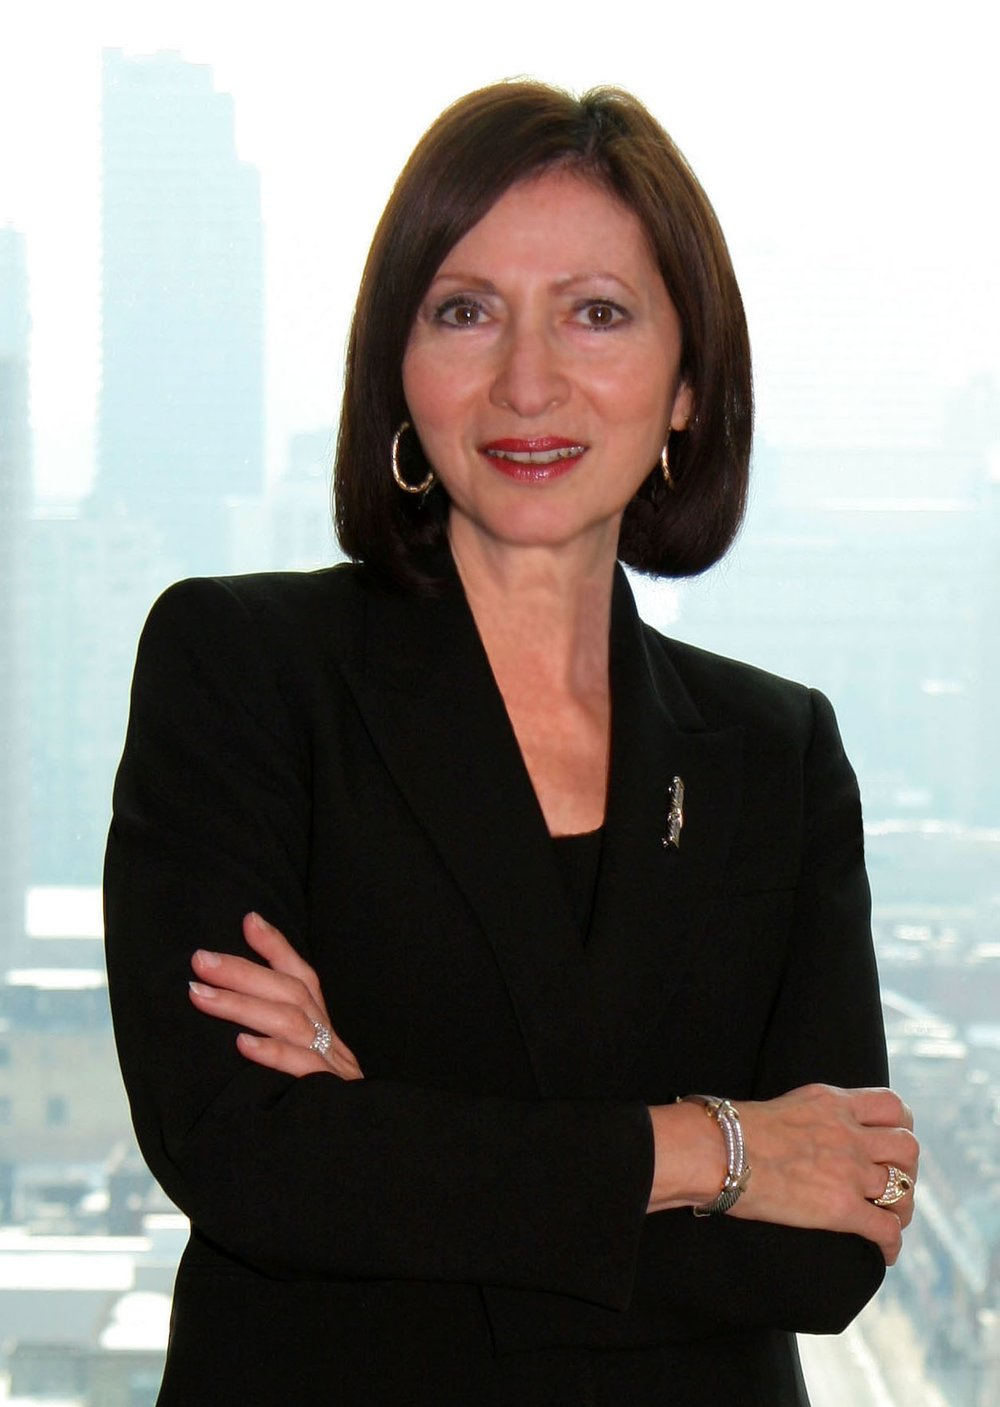 Dr. Ann Cavoukian  is recognized as one of the world's leading privacy experts. She is presently the Executive Director of the Privacy and Big Data Institute at Ryerson University and served an unprecedented three terms as the Information & Privacy Commissioner of Ontario, Canada. There, she created  Privacy by Design (PdB) , a framework that seeks to proactively embed privacy into design, thereby achieving the strongest protection possible. In 2010, International Privacy Regulators unanimously passed a Resolution recognizing Privacy by Design as an international standard. Since then, PbD has been translated into 39 languages.  Dr. Cavoukian has received numerous awards recognizing her leadership in privacy, including being named as one of the  Top 25 Women of Influence in Canada , the  Top 10 women in Data Security and Privacy,  one of the  Top 100 Leaders in Identity , and most recently, Dr. Cavoukian was awarded the  Meritorious Service Medal  for her outstanding work on creating Privacy by Design and taking it global (May, 2017).